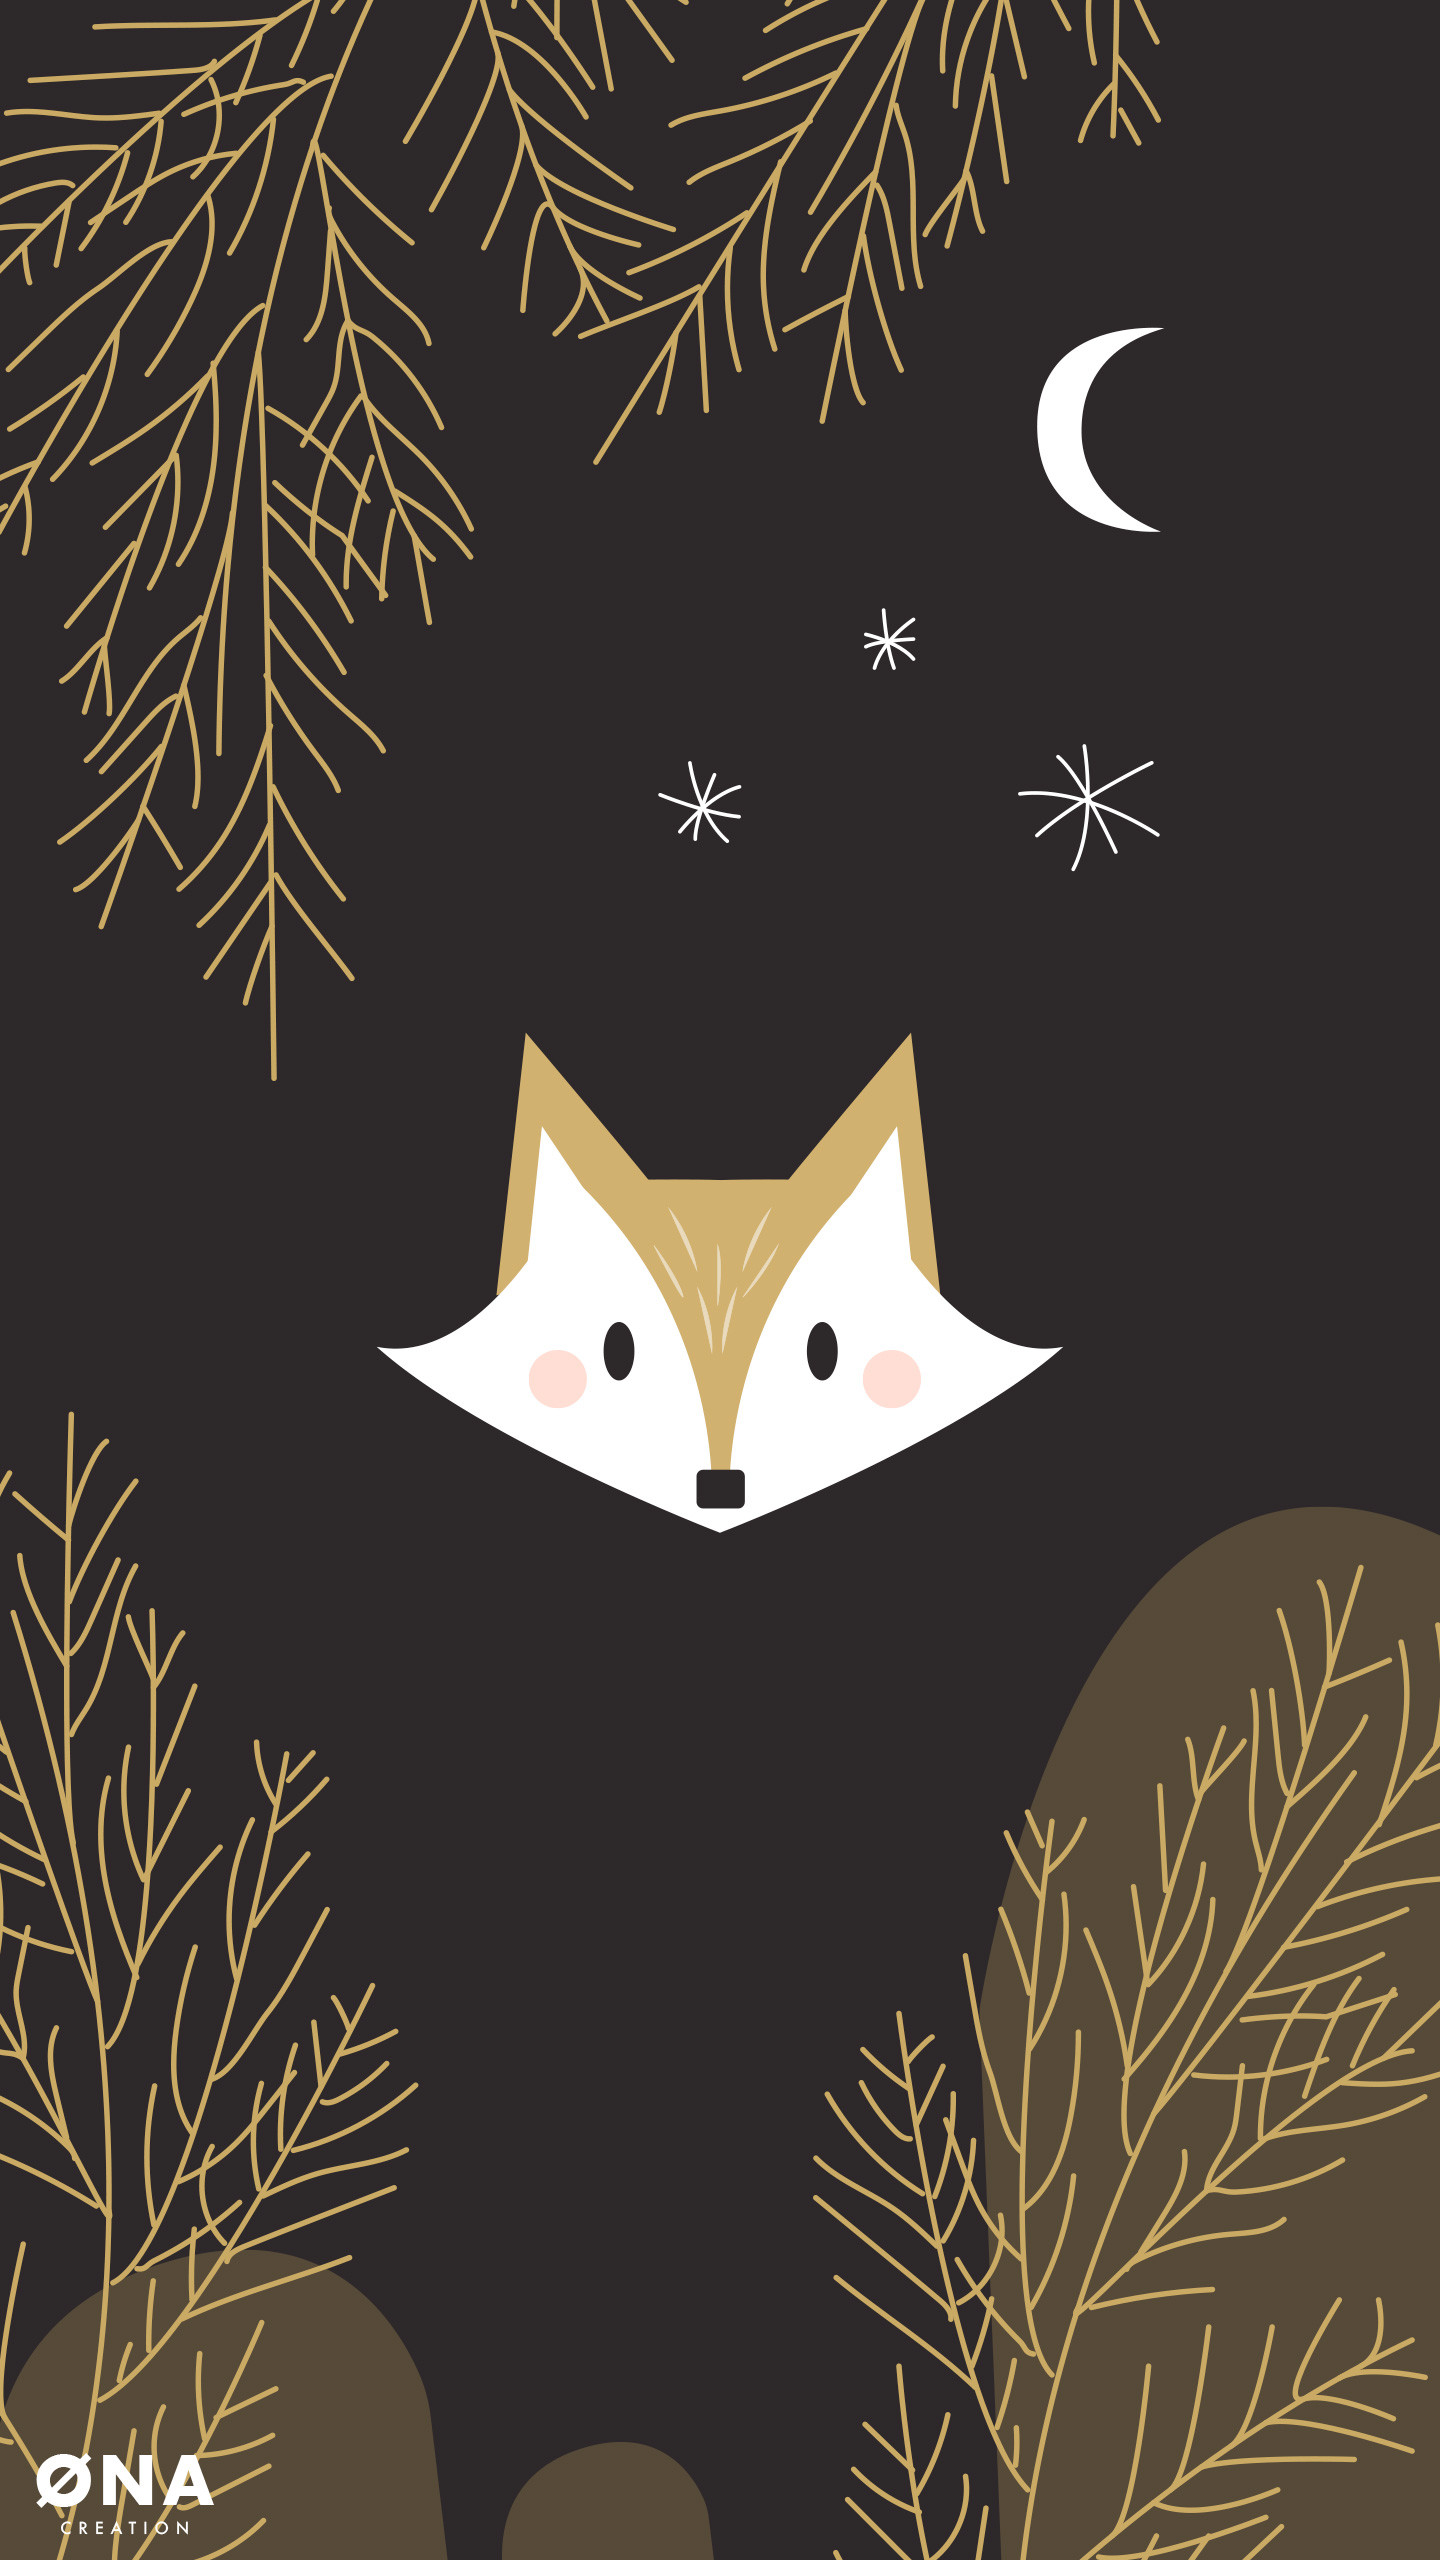 Res: 1440x2560, Woodland animals wallpapers for your mobile phone